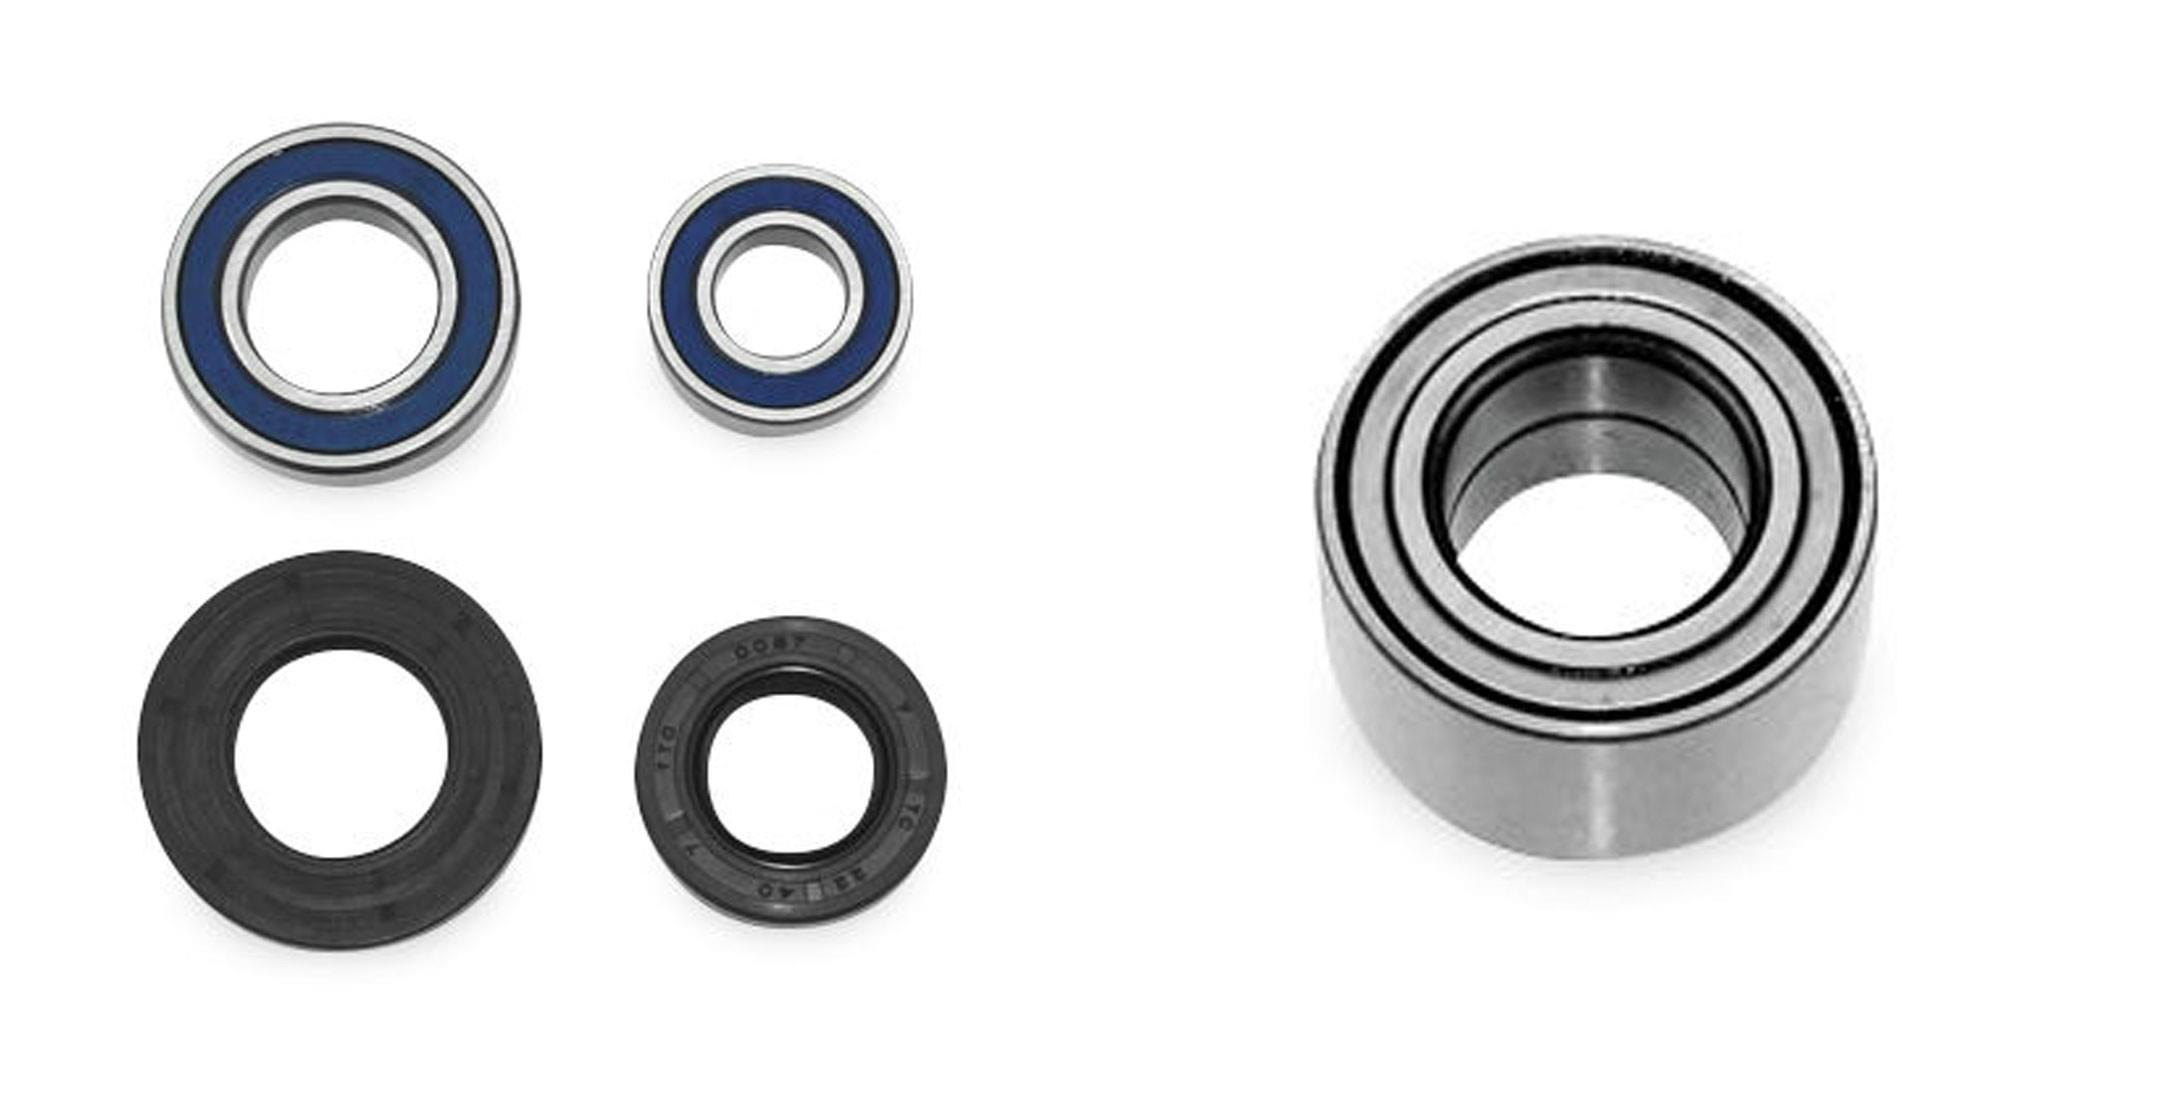 Polaris Outlaw 450 2008-2010 Front Wheel Bearings And Seals